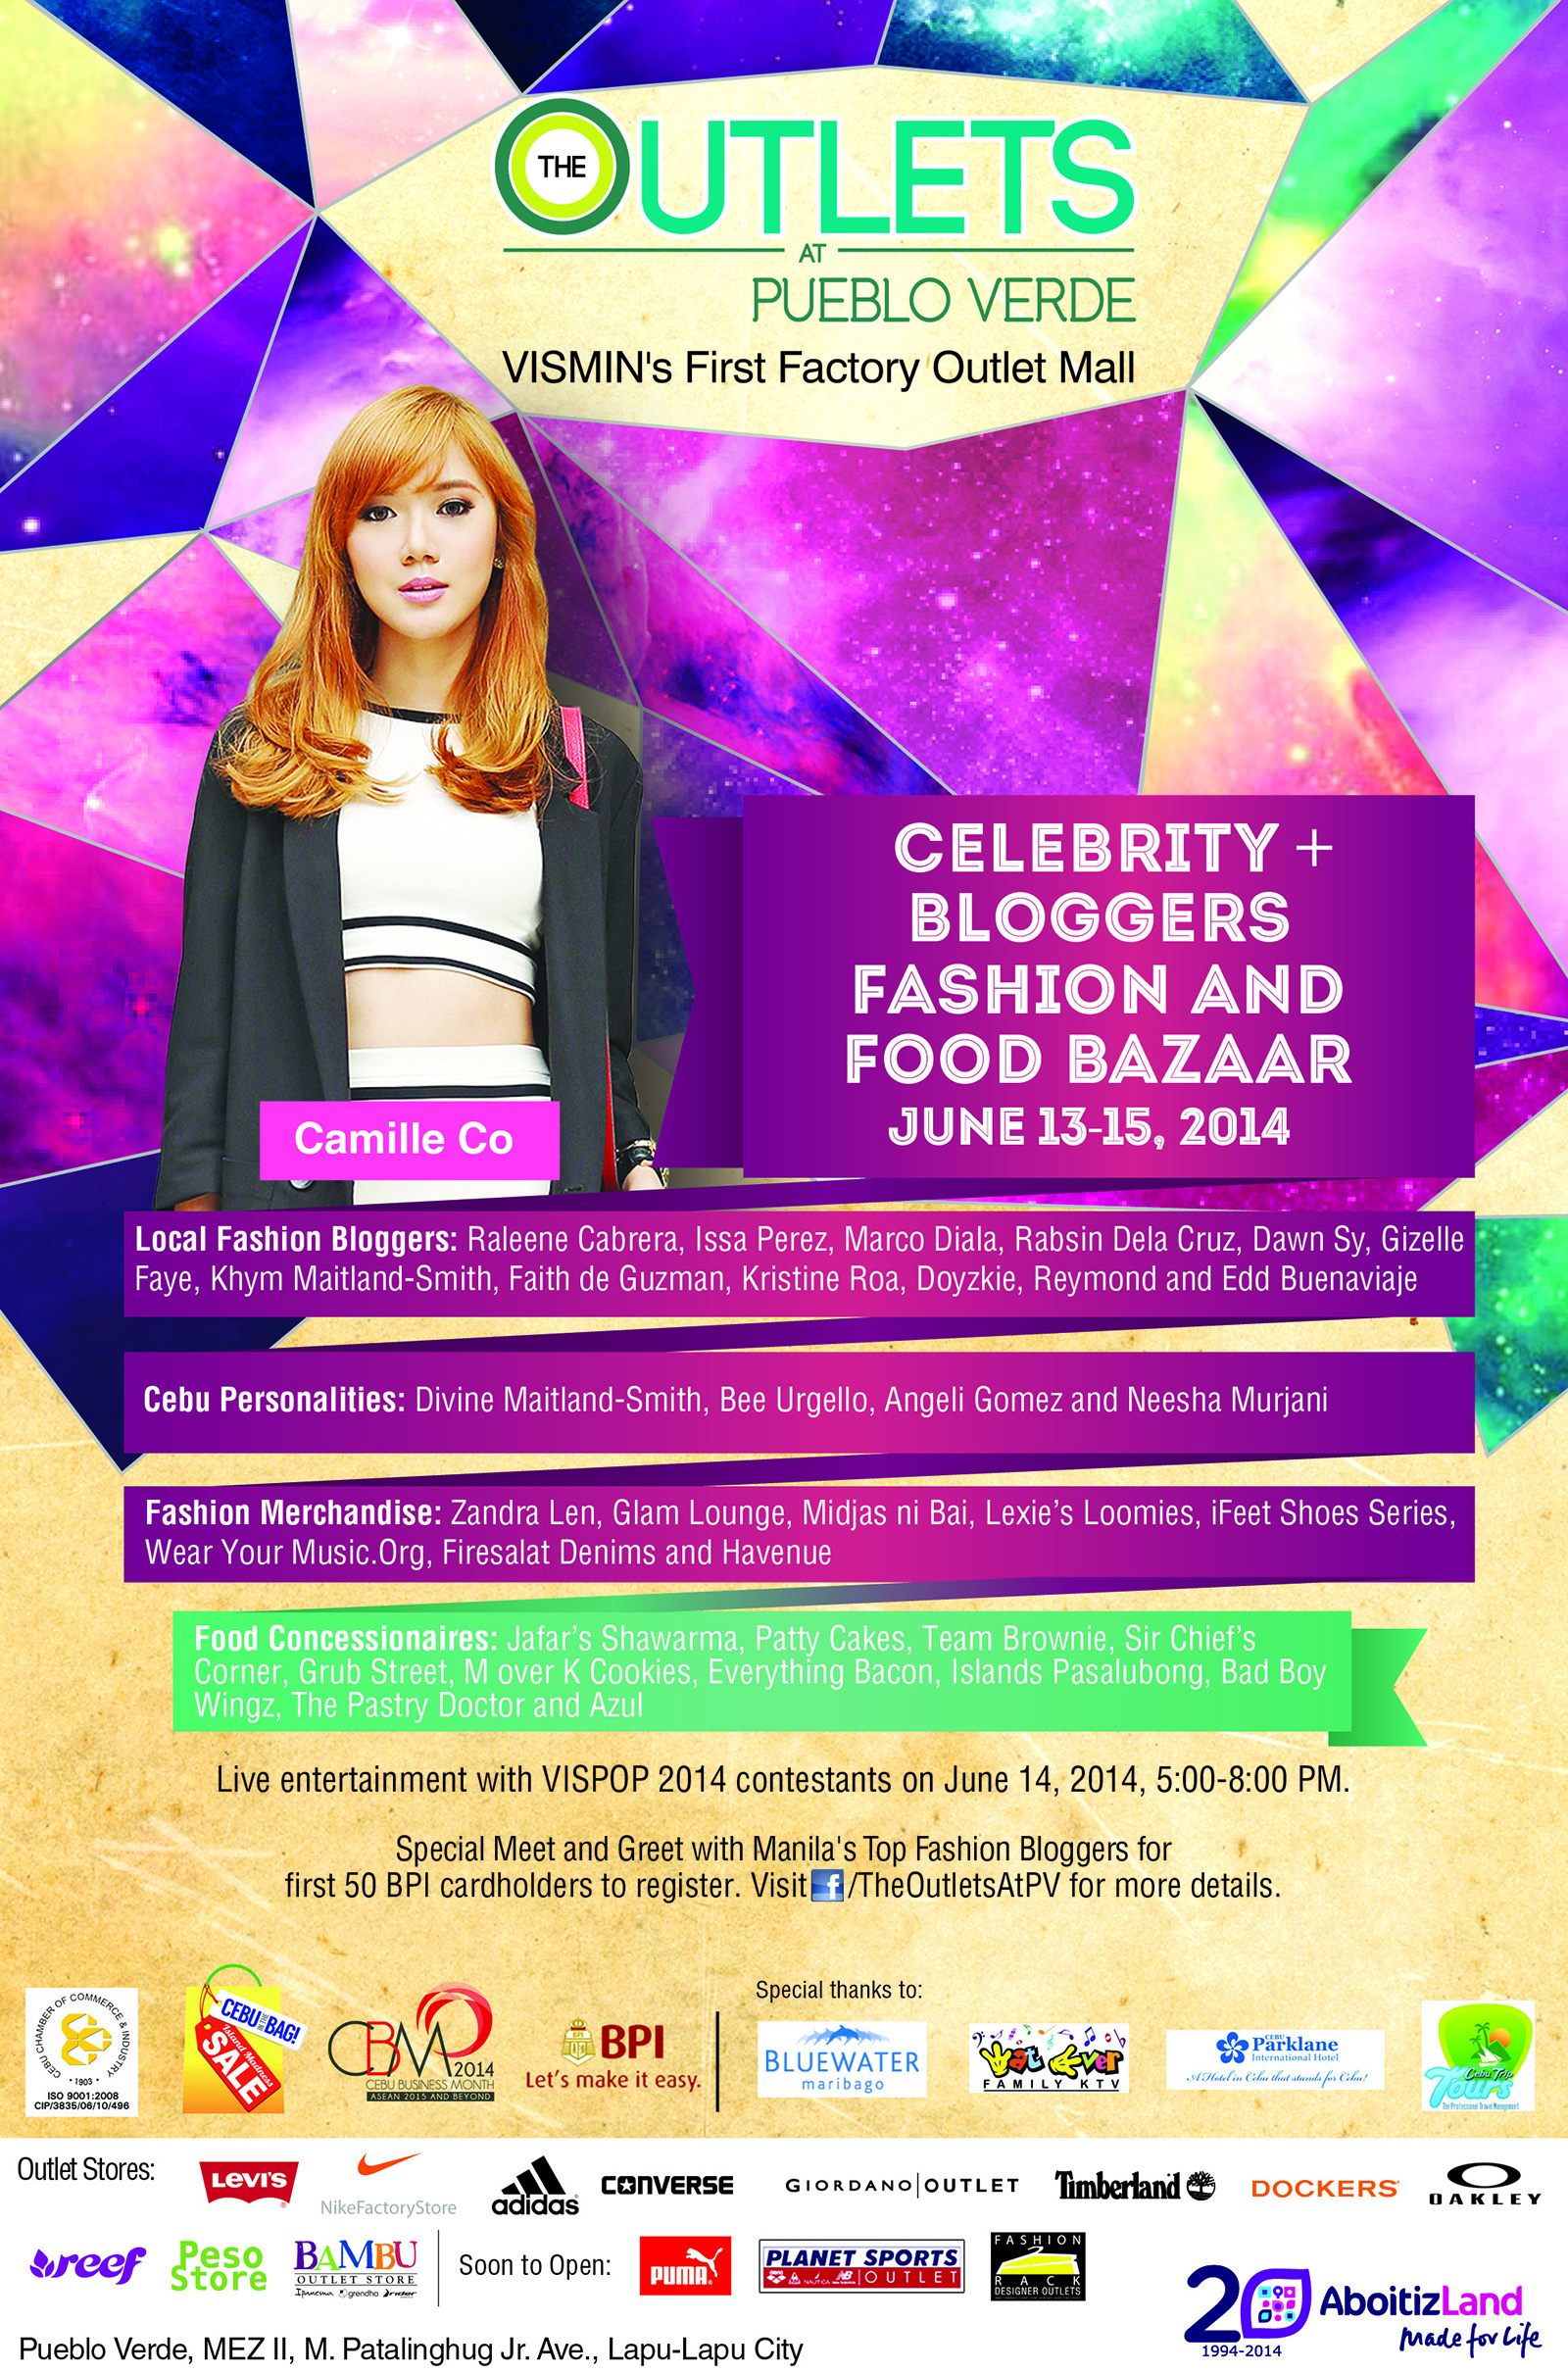 Cebu In The Bag: Celebrity + Bloggers Bazaar